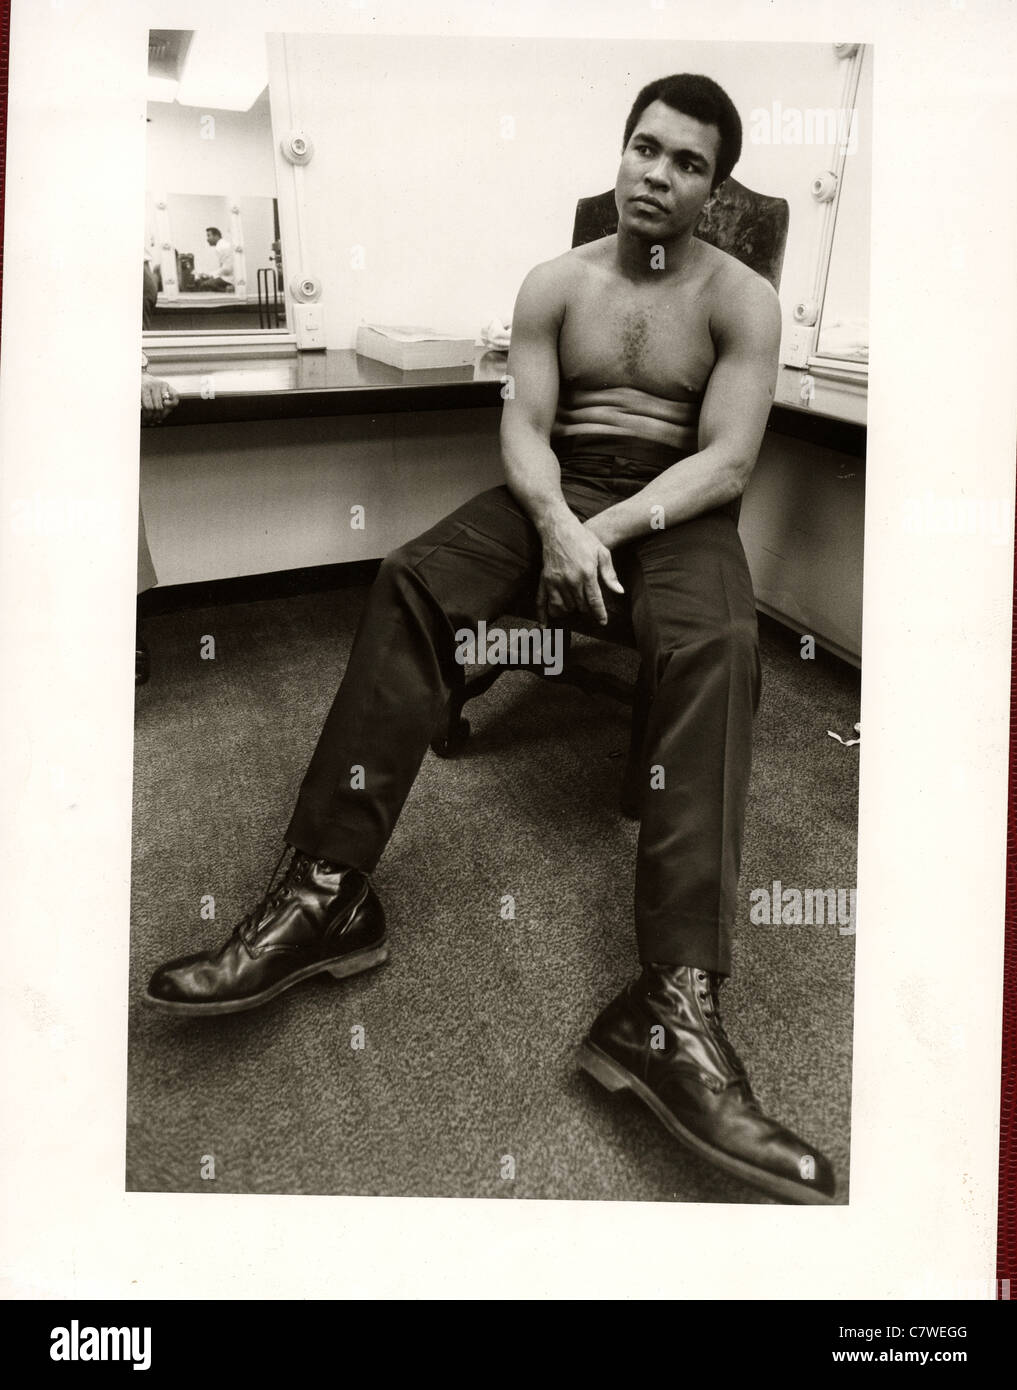 Former World heavyweight boxing champion Mohammed Ali in his dressing room ibefore the 'Thrilla in Manila' - Stock Image